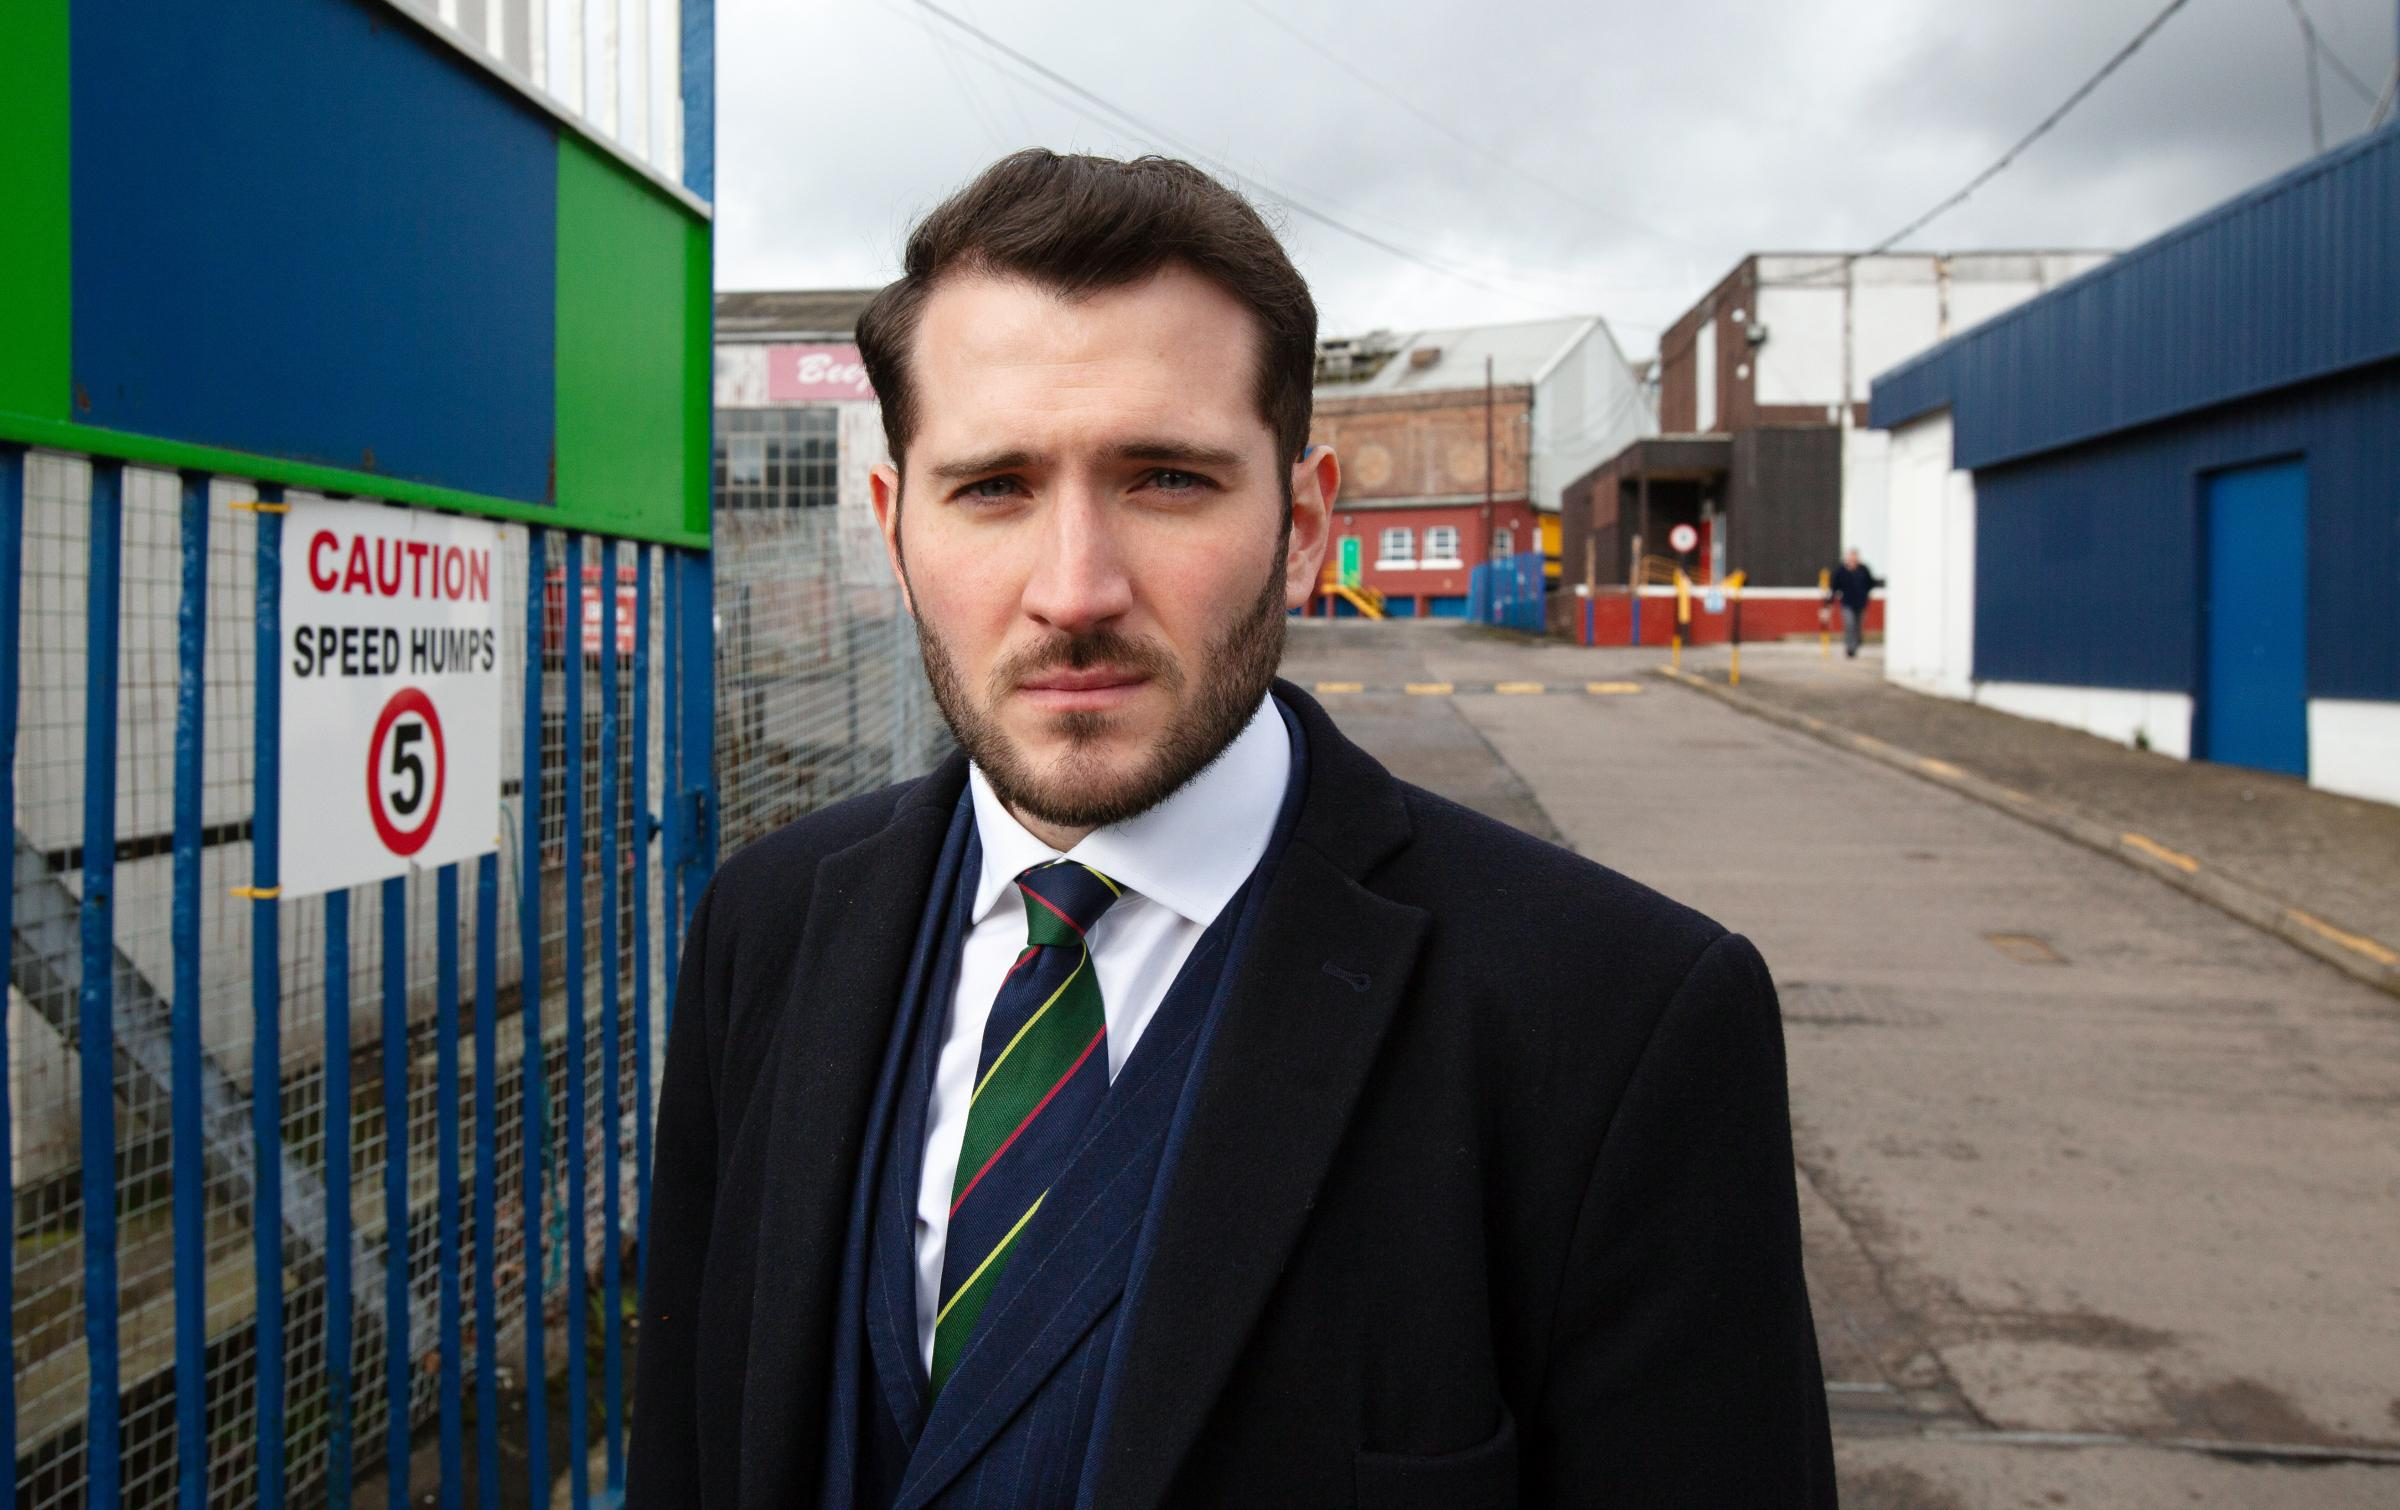 Glasgow's Paul Sweeney calls for 'radical reform' of Labour party after election defeat